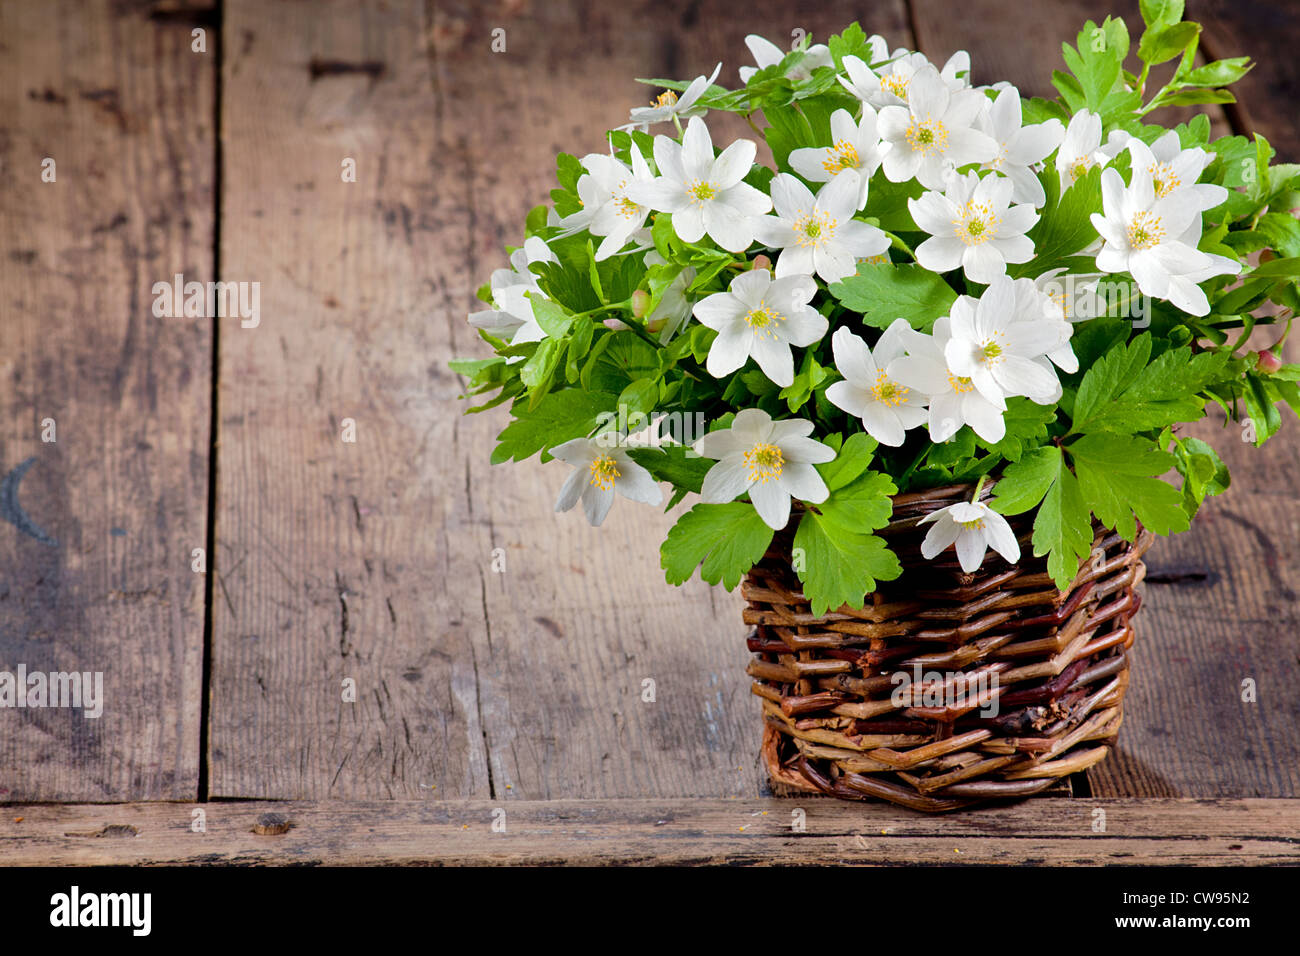 Bouquet of spring flowers - wood anemones on a rustic background - Stock Image